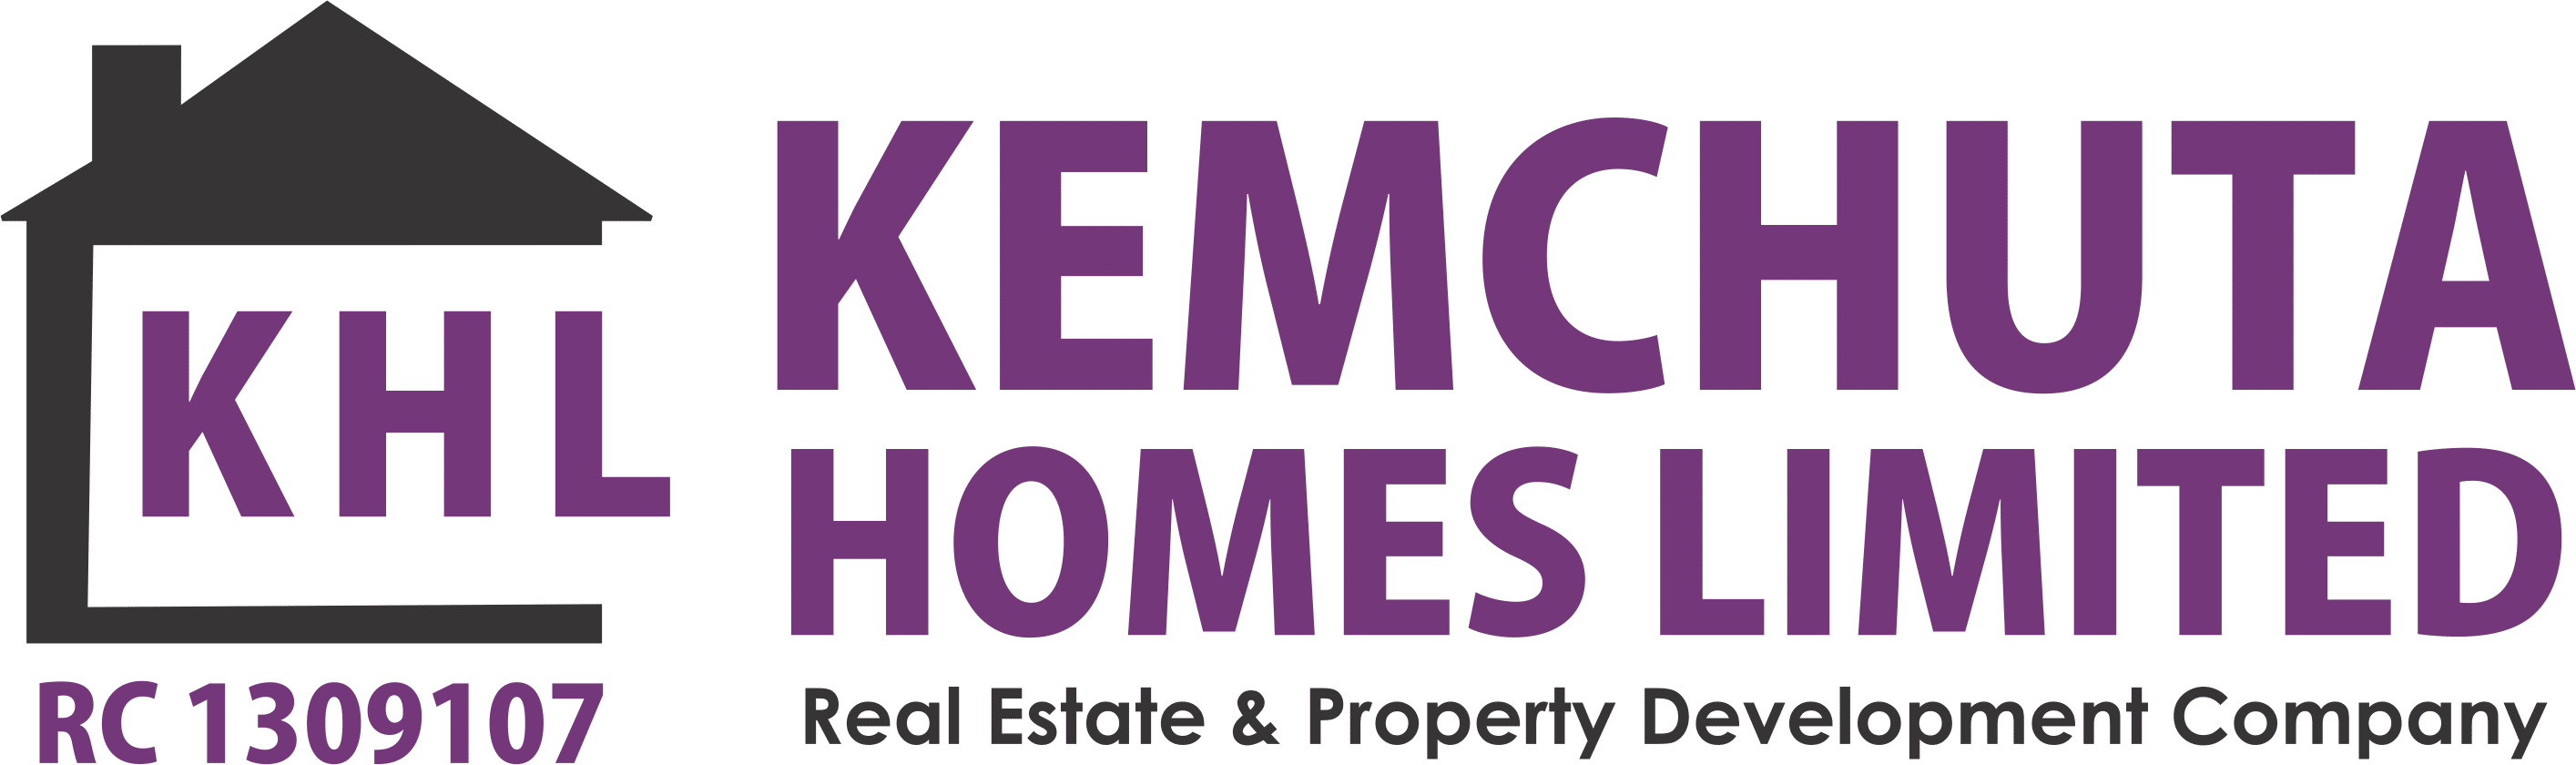 Kemchuta Homes Limited